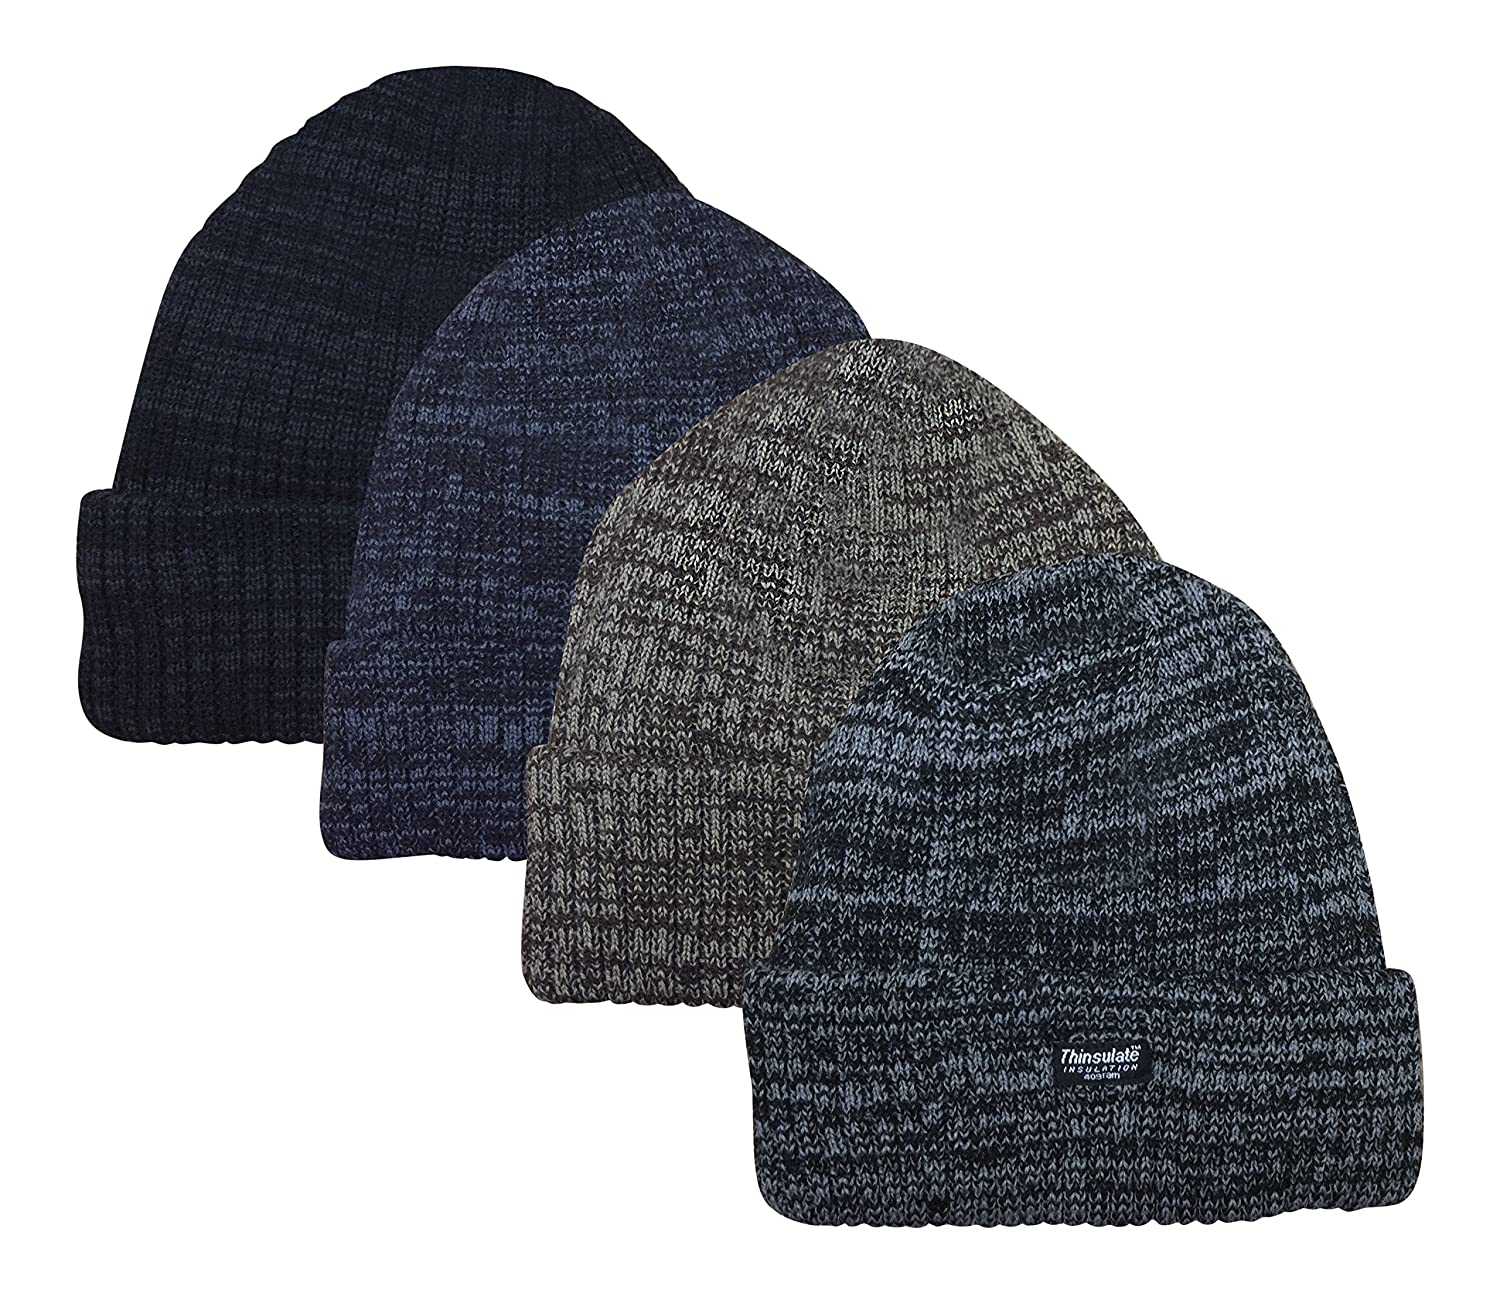 Unisex Marl Chunky Knitted 3M Thermal Winter Beanie Hat Thinsulate